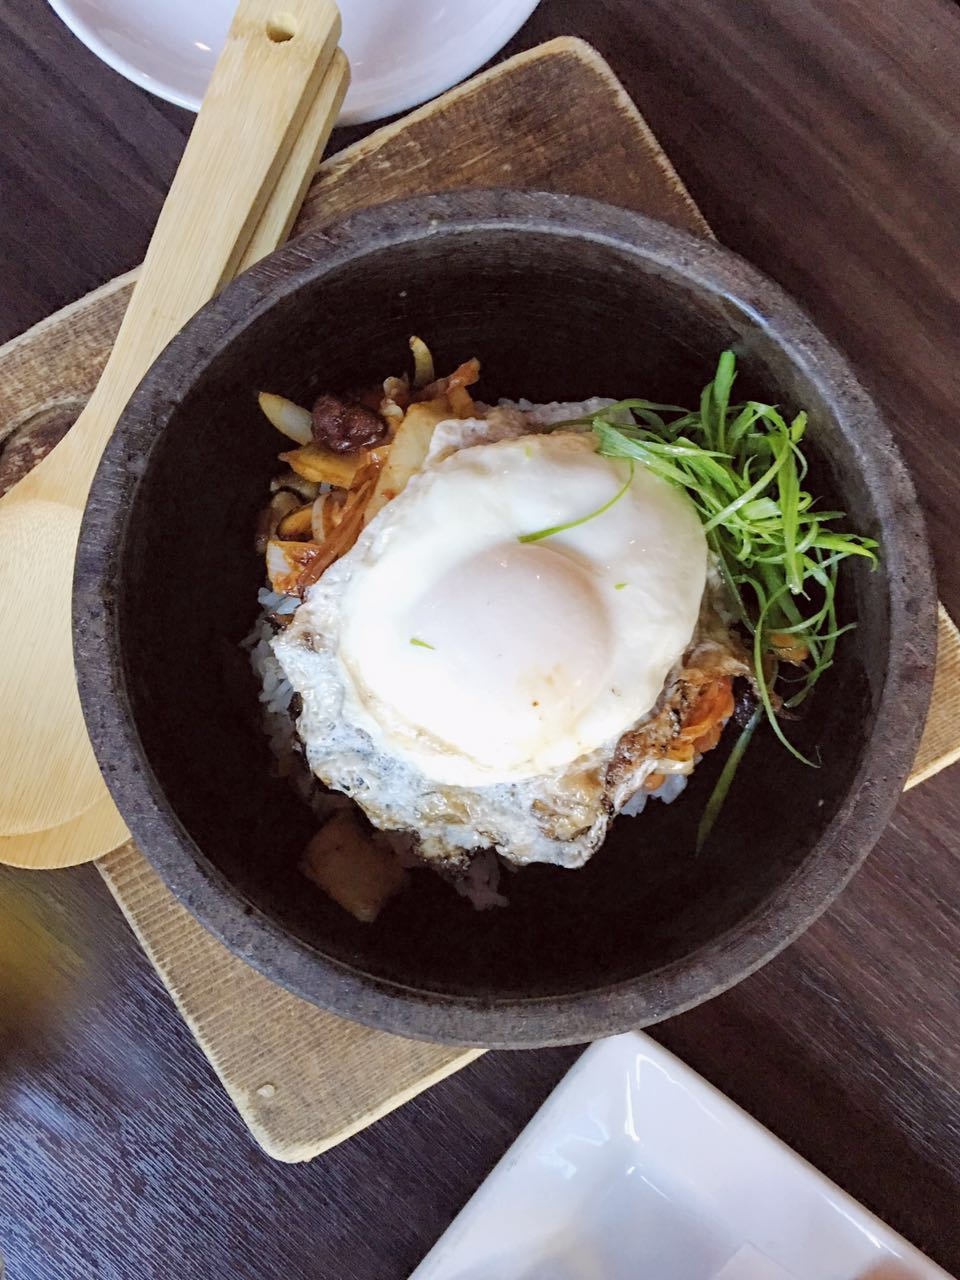 Spicy Chashu Stone Bowl - Sunny side up egg on top of tender bbq pork slices and a bed of rice, garnished with kimchi and green chives.